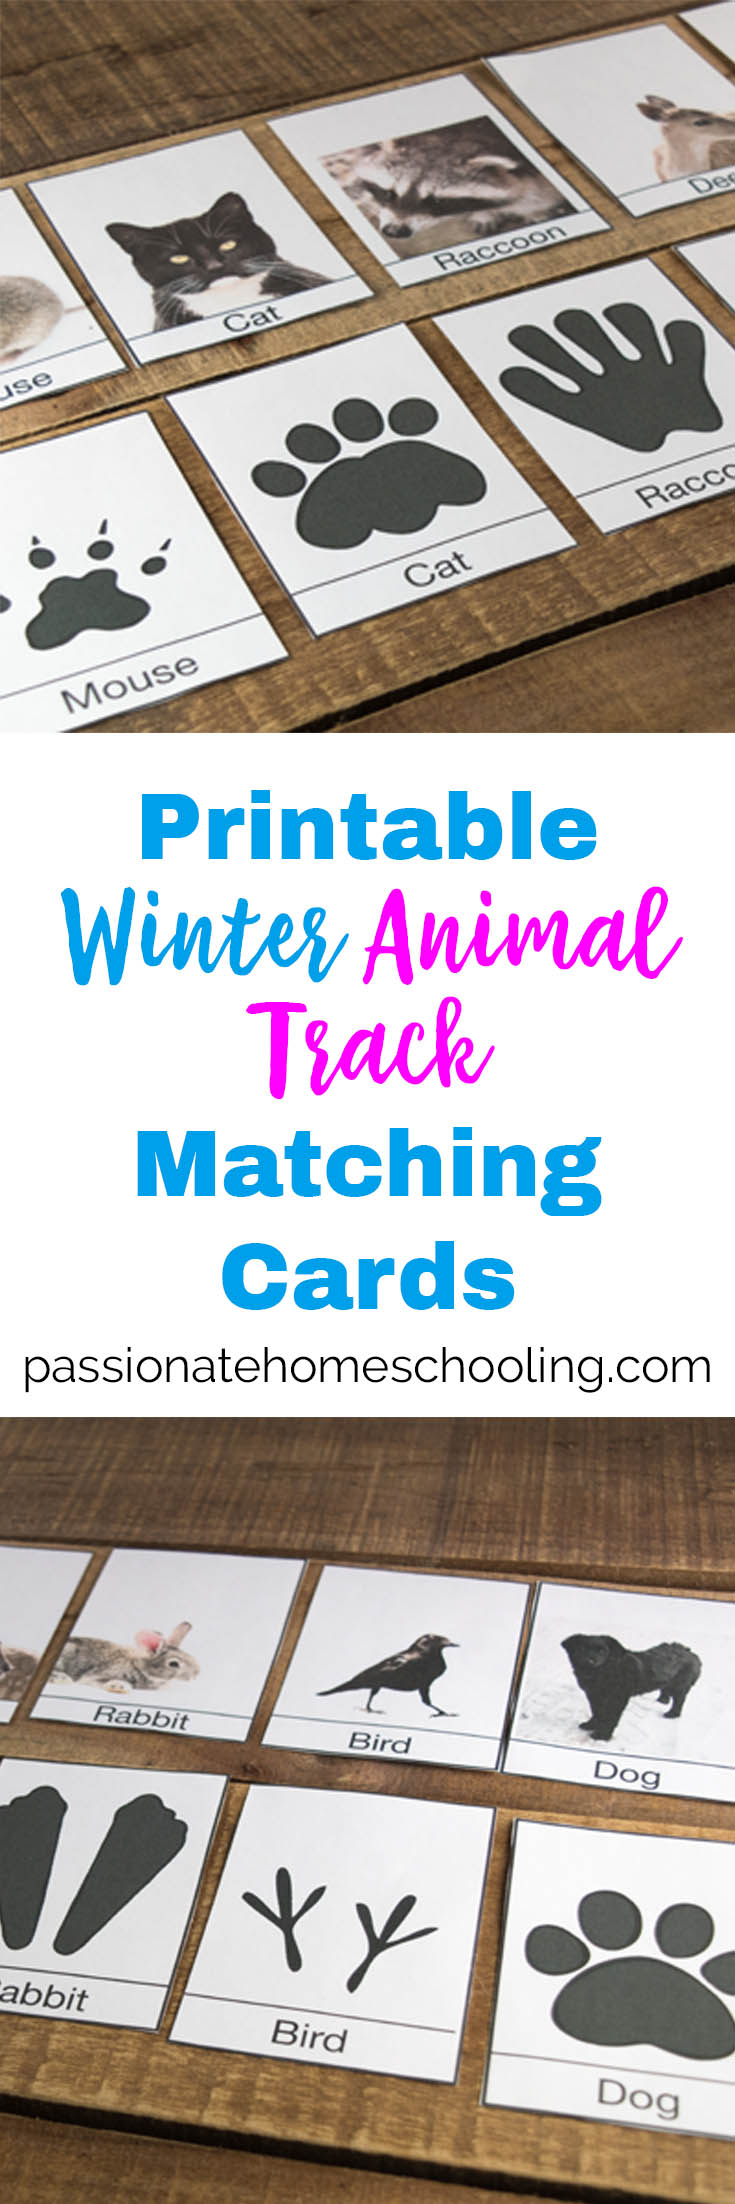 I love these free printable animal track cards, they are perfect for helping kids to identify animals around your home in the winter. A great animal matching game for preschool to 2nd grade. #freeprintables #homeschool #preschool #naturestudy #unitstudy